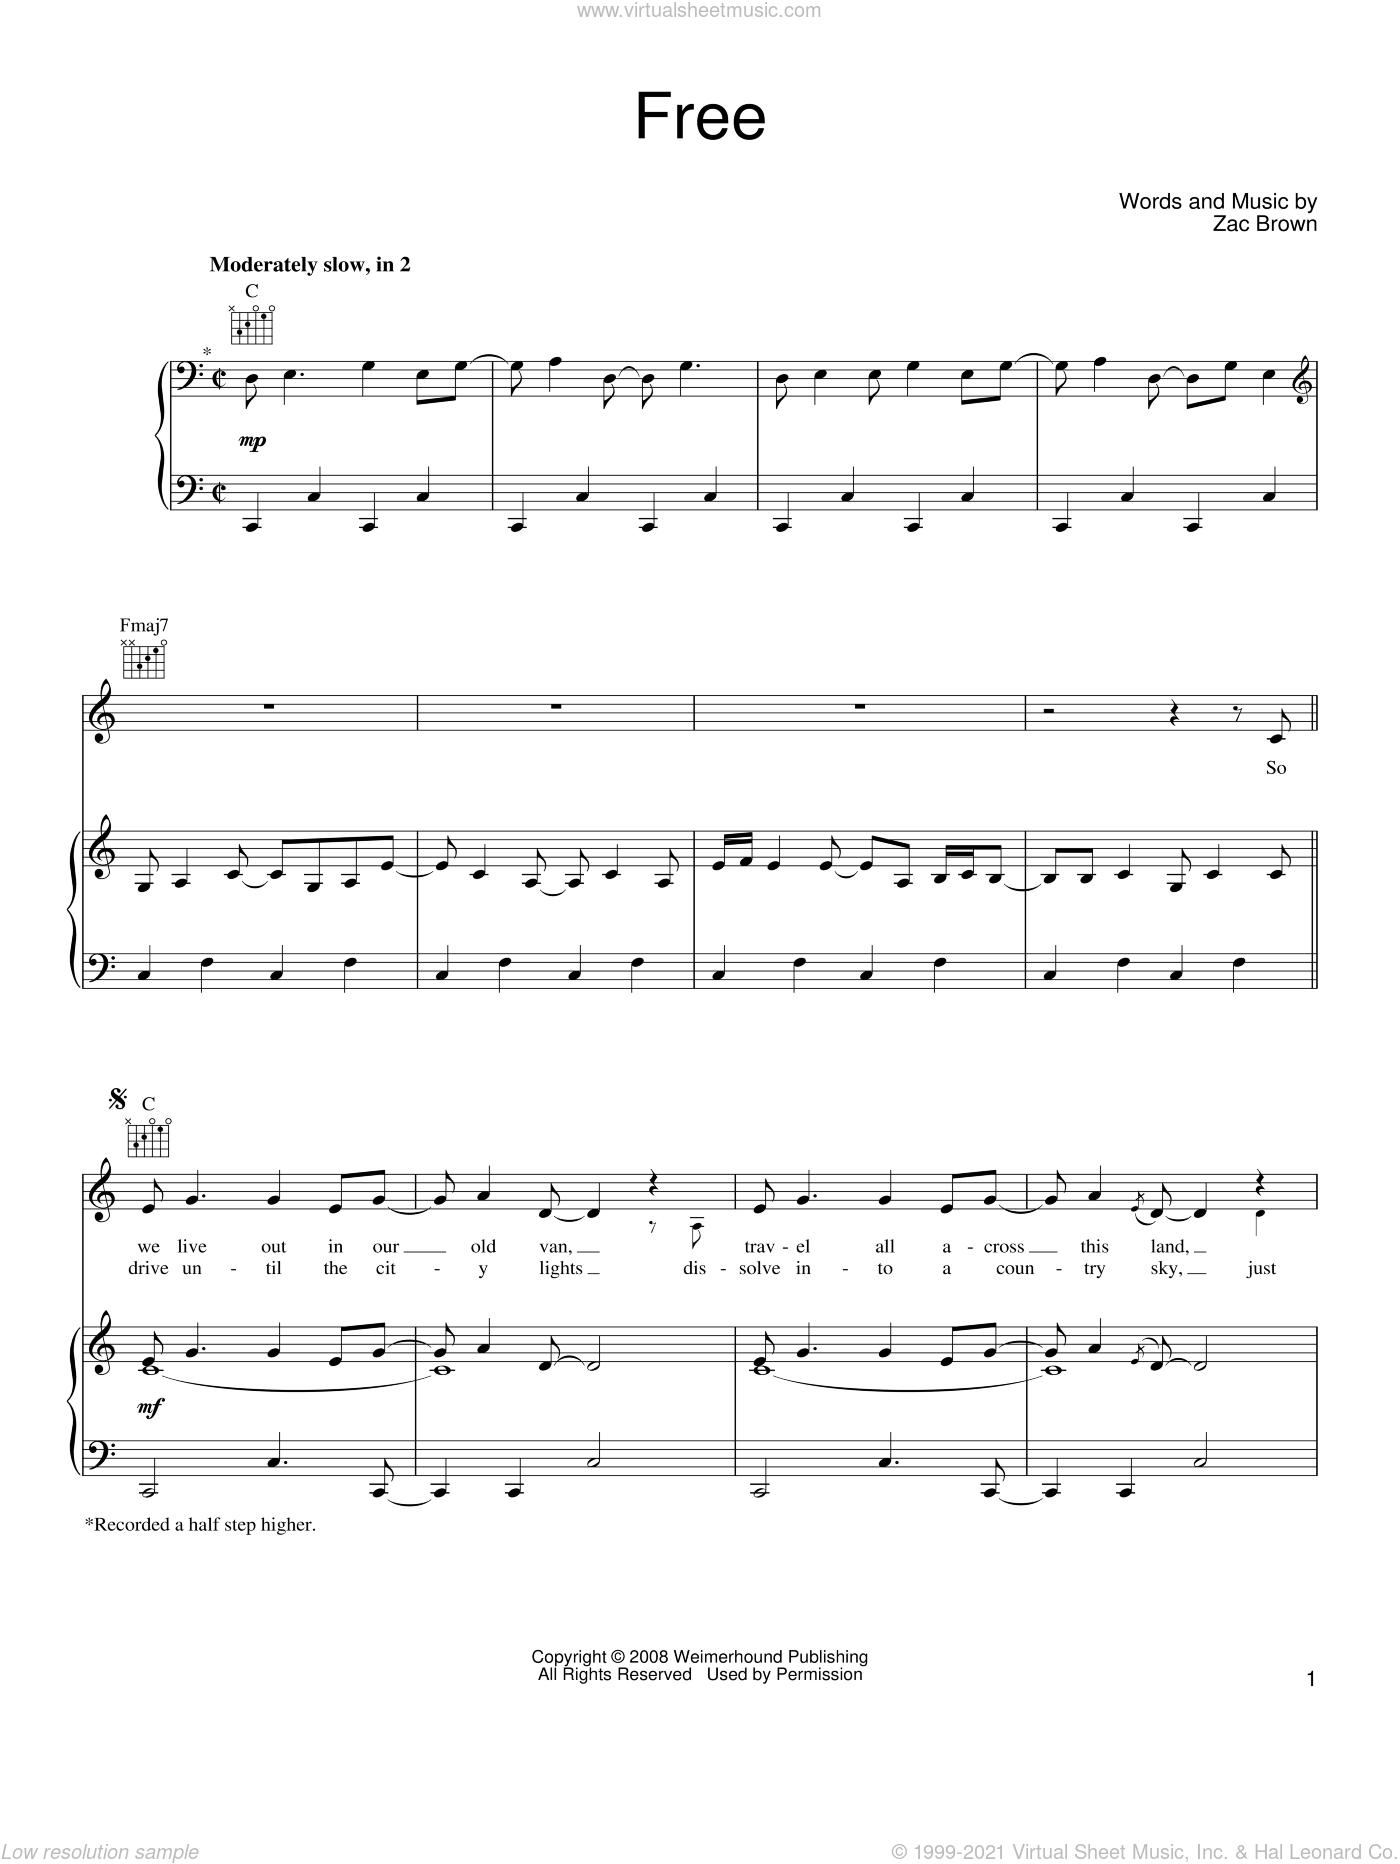 Free sheet music for voice, piano or guitar by Zac Brown